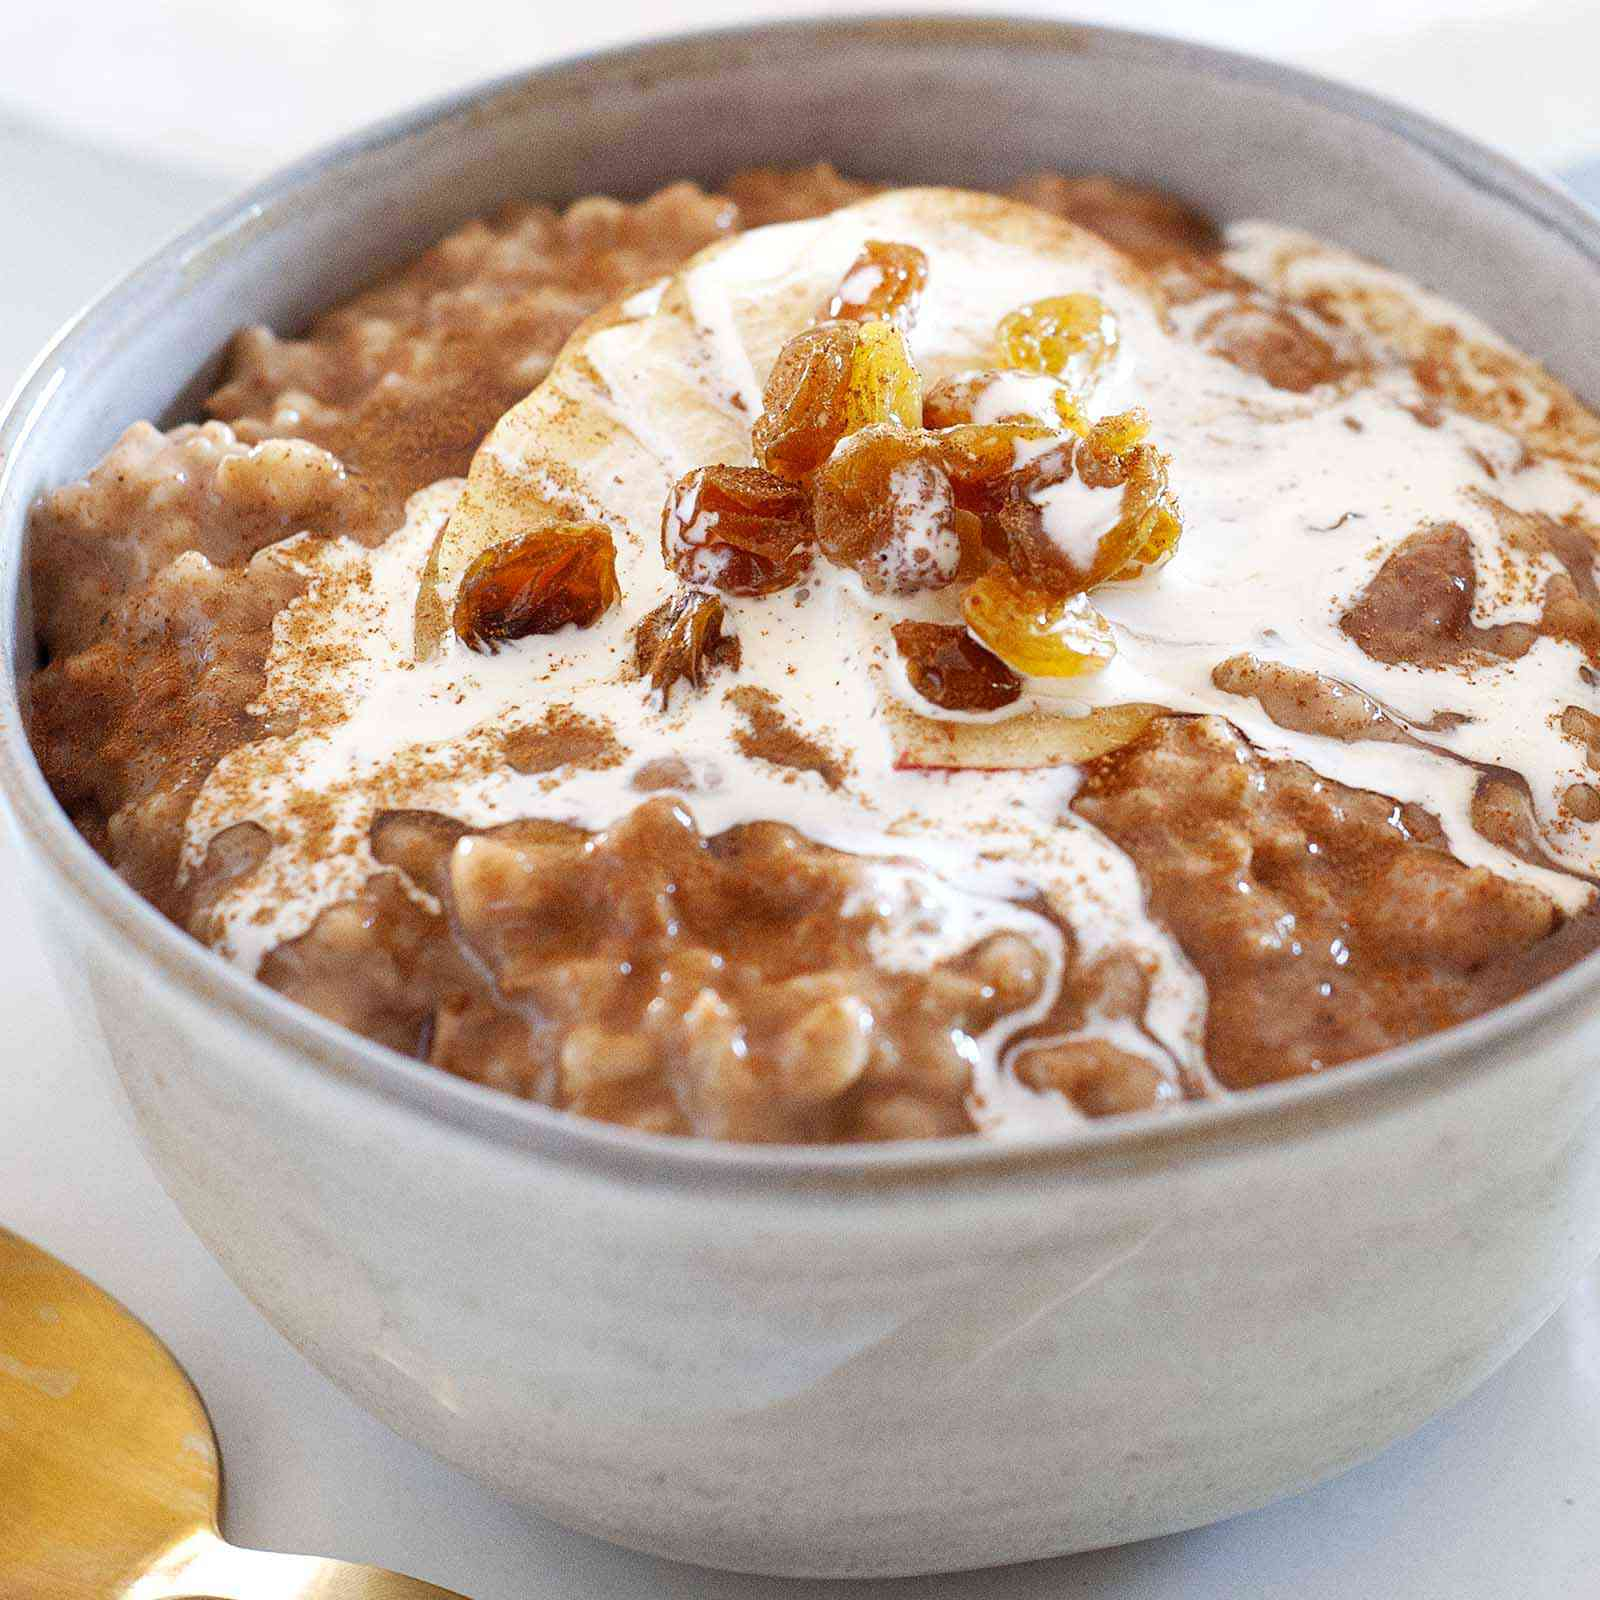 Crockpot Oatmeal topped with milk and golden raisins with a gold spoon below.